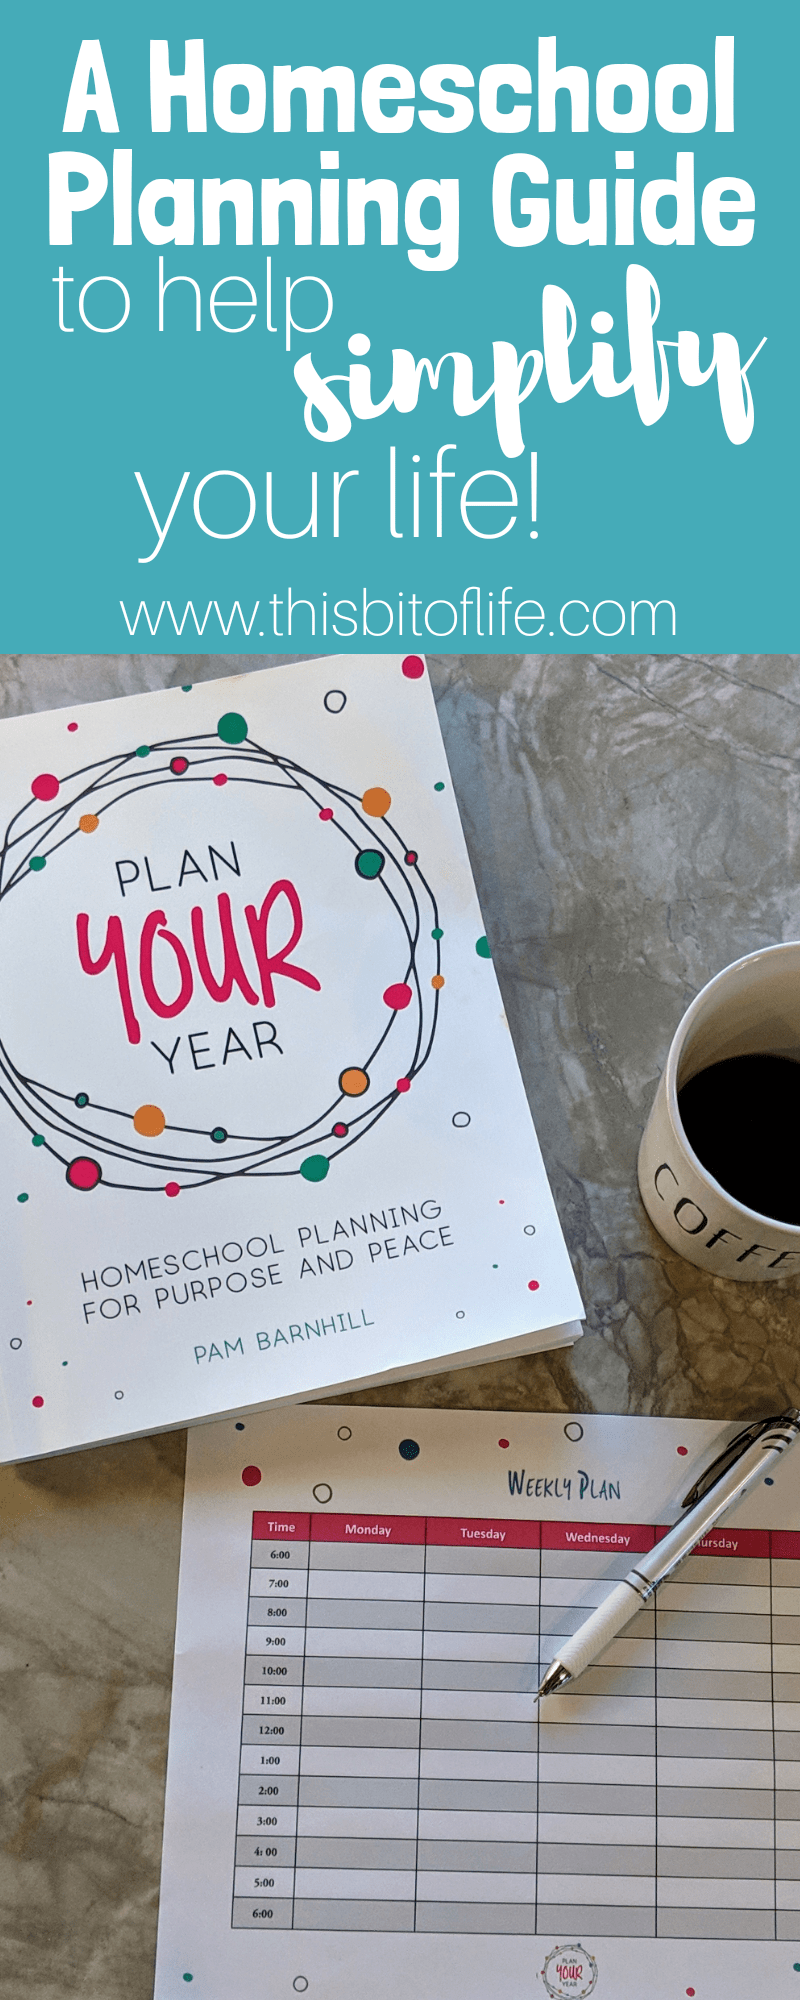 Do you need help homeschool planning? This homeschool planning guide can help simplify your life! Plan your year with purpose and peace. #homeschoolplanner #homeschoolplanning #planyouryear #pambarnhill #thisbitoflife